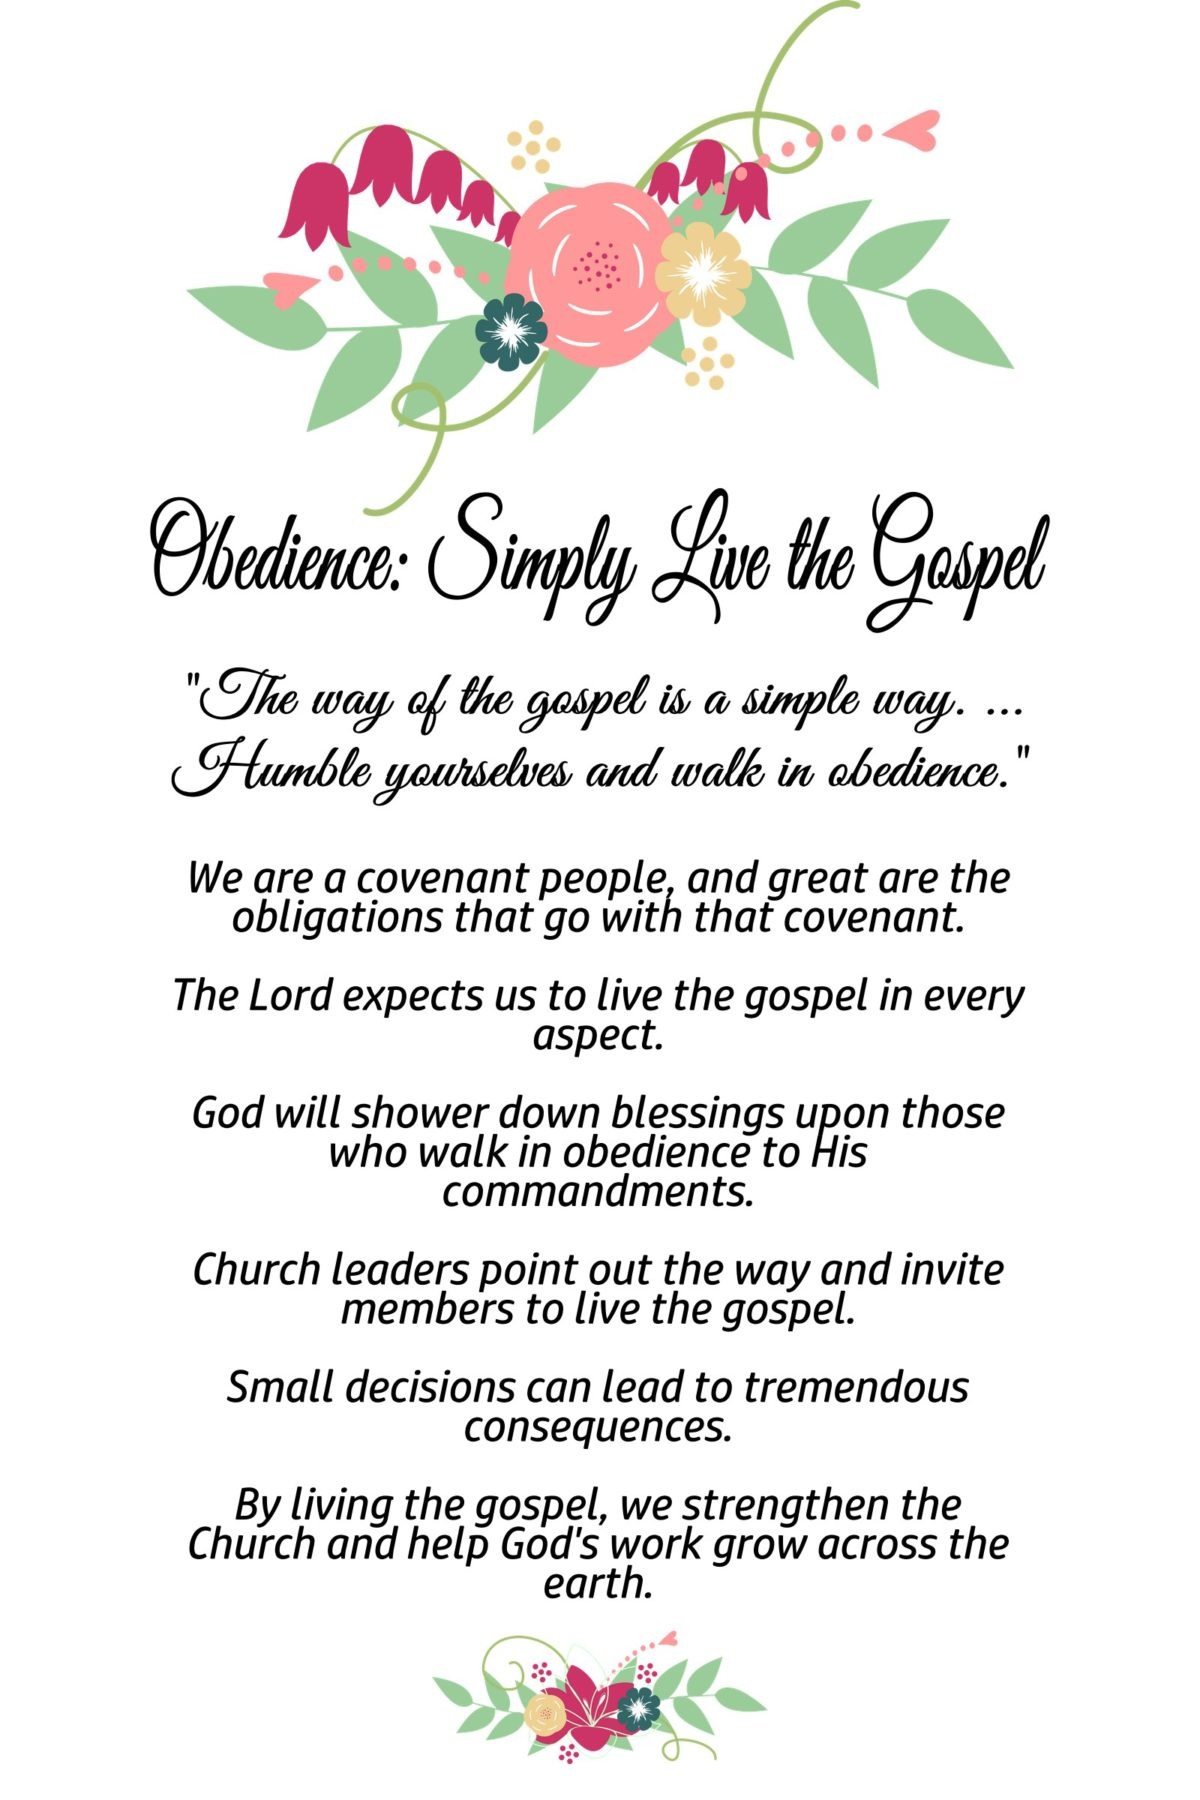 12-Chapter 12: Obedience: Simply Live the Gospel